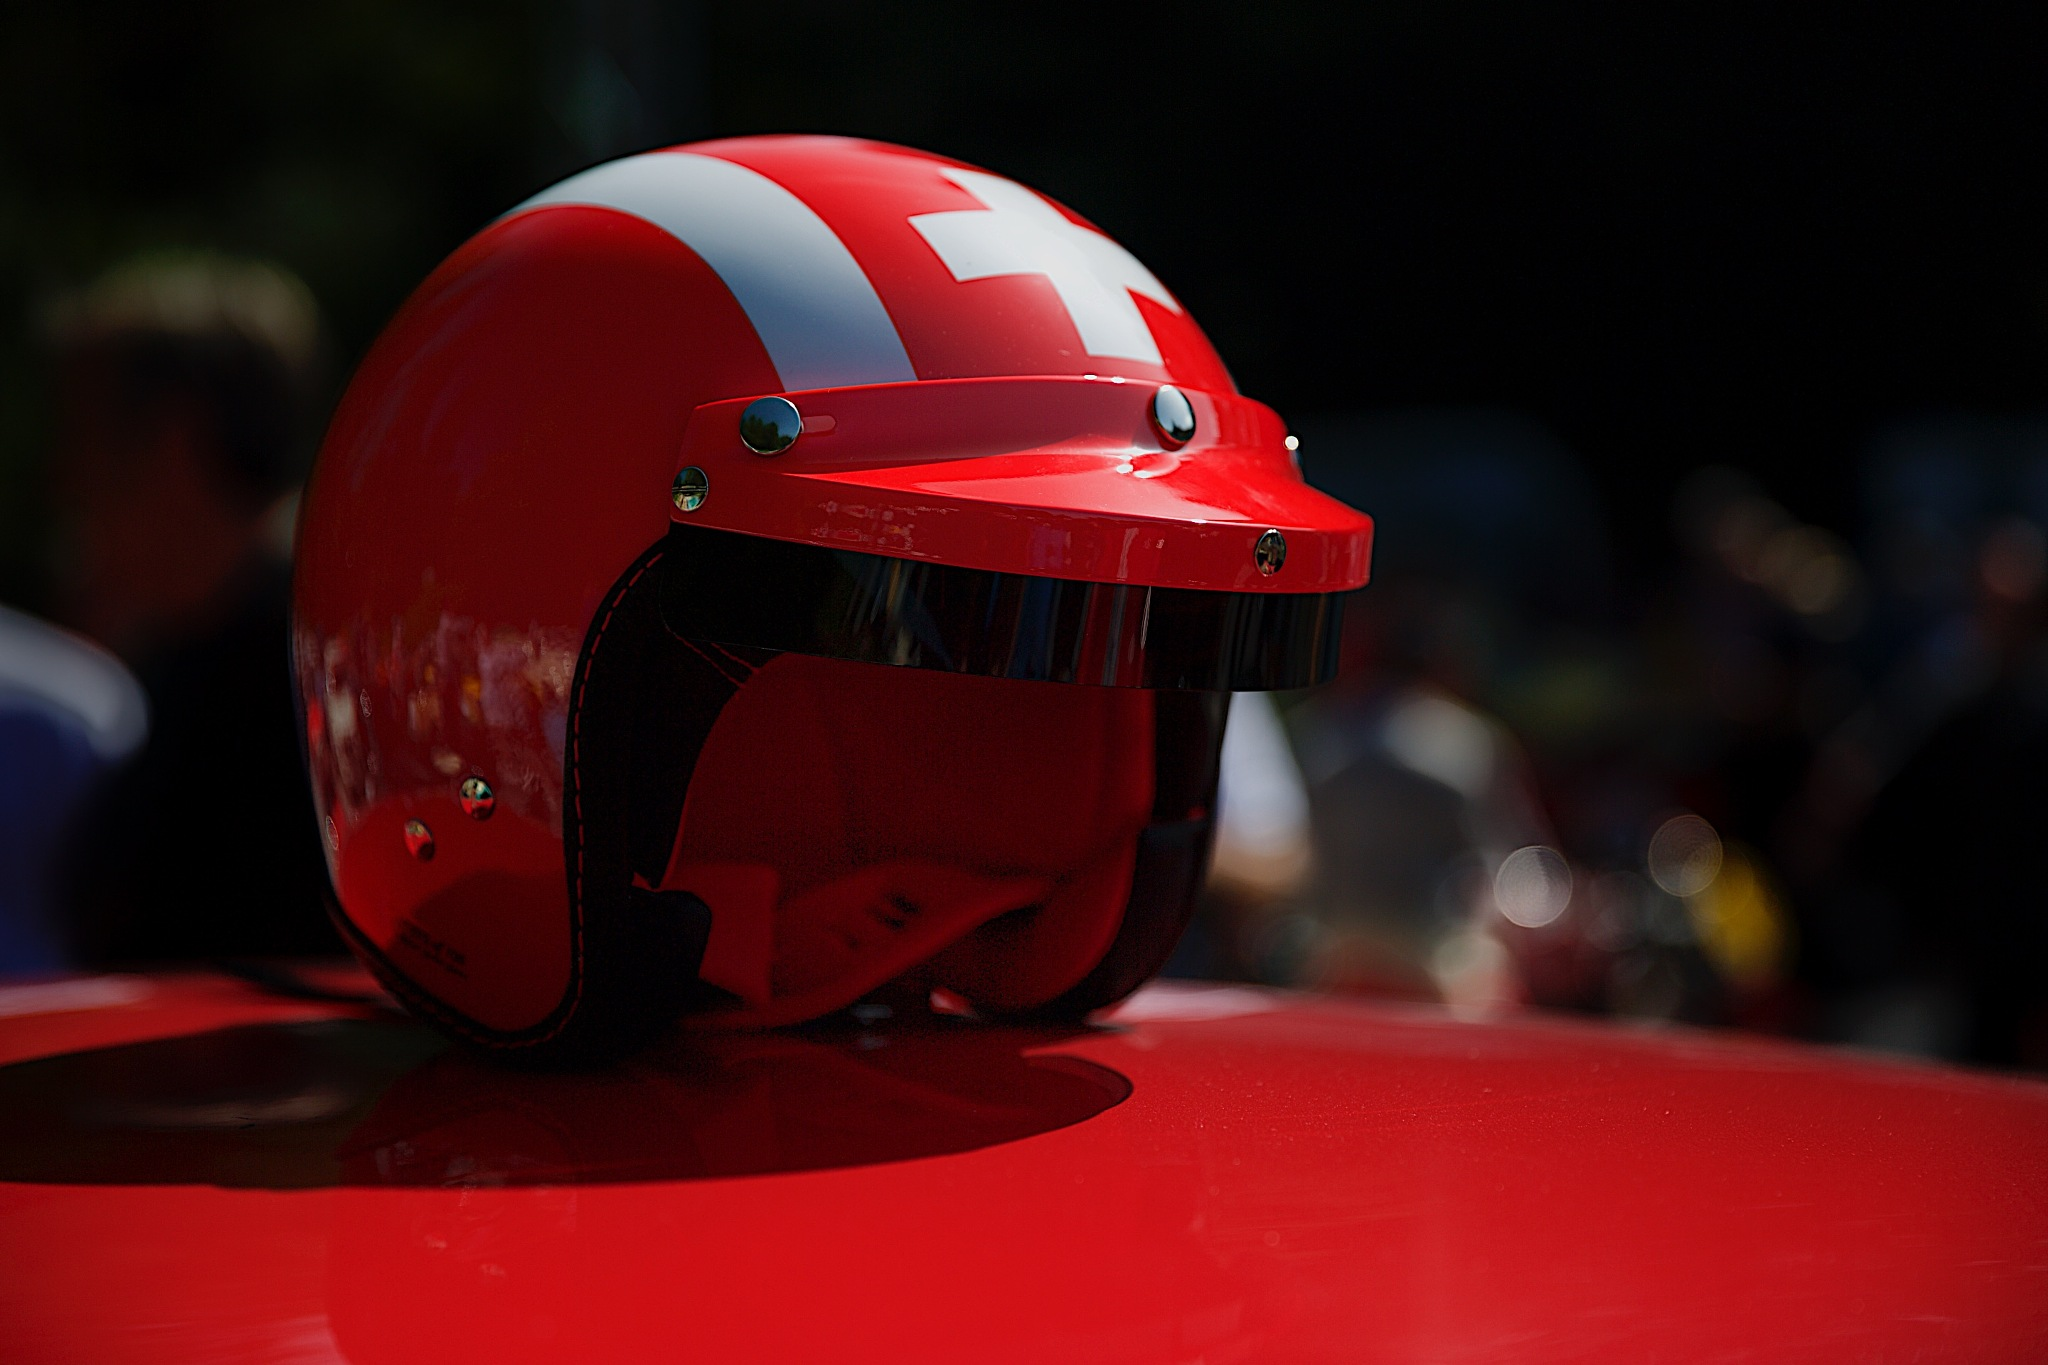 Red helmet by Tom K